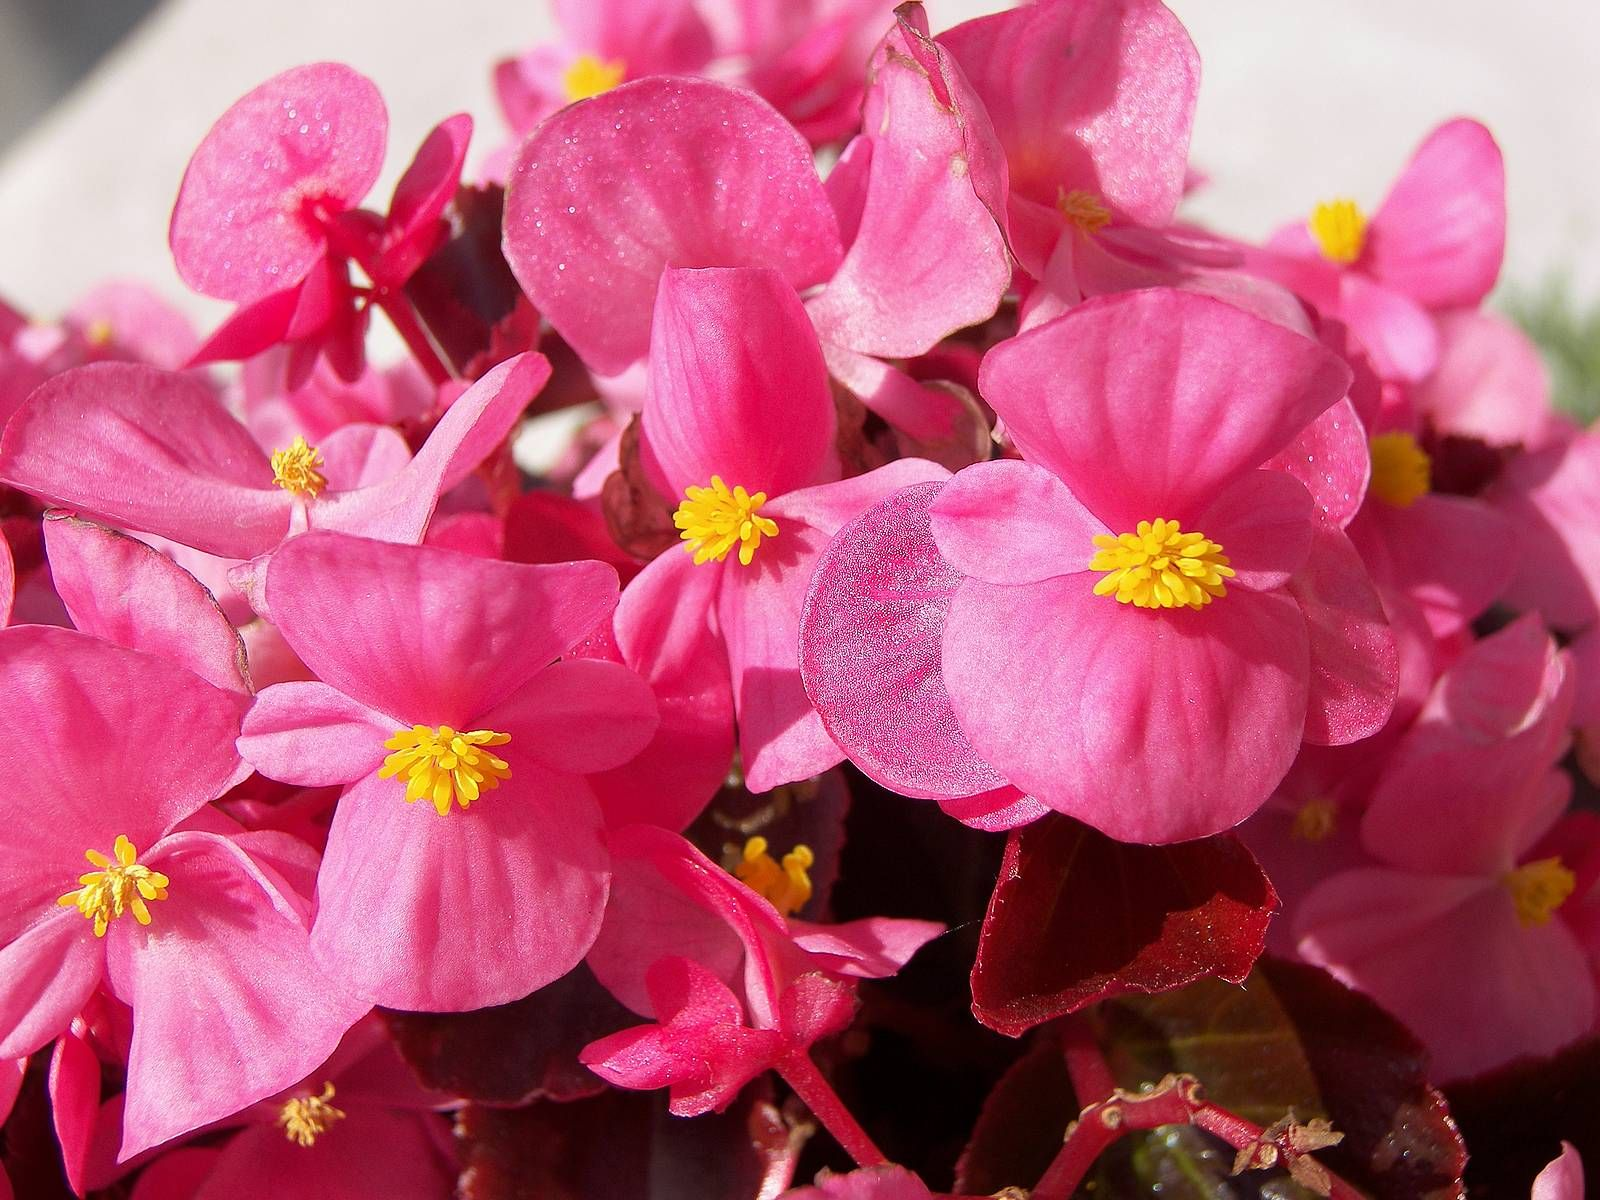 Potare Il Ficus Elastica pink begonia (with images) | flowers, begonia